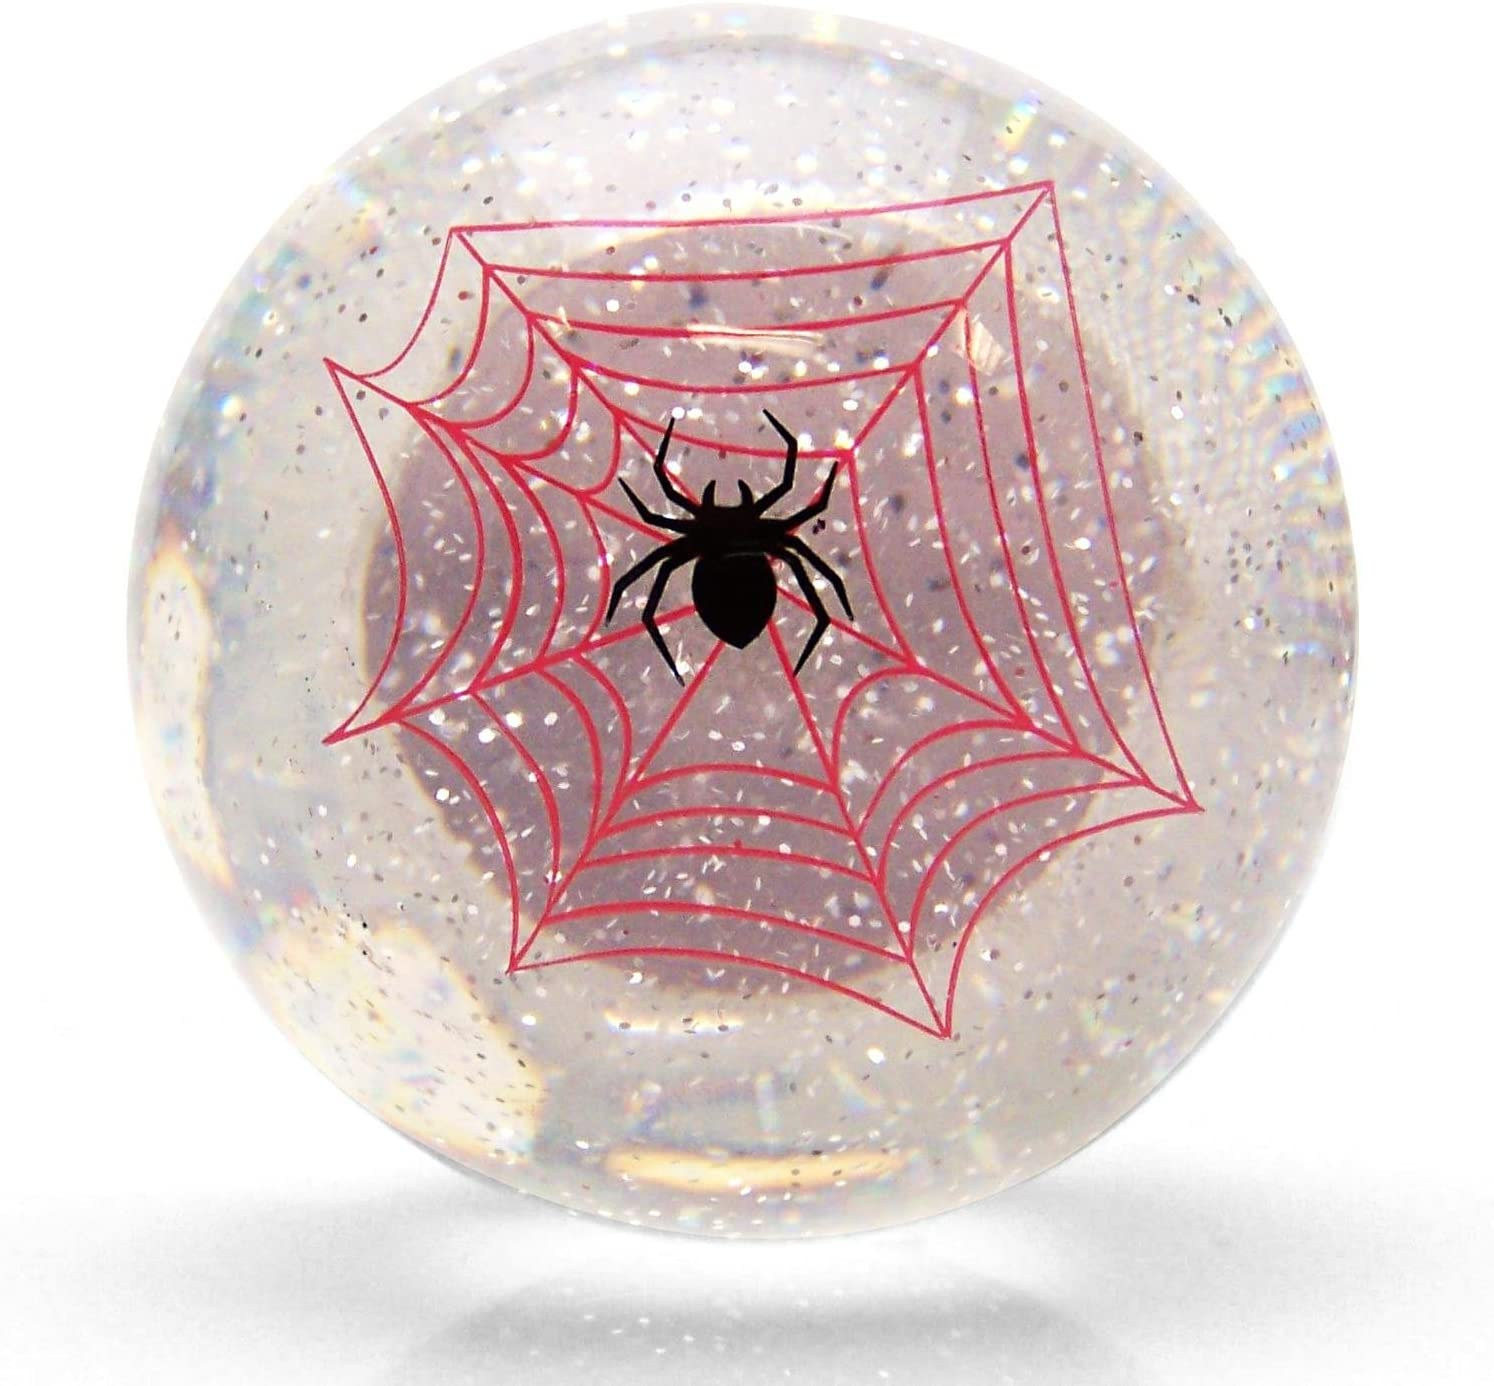 American Shifter 15658 Clear Spider Suicide Brody Knob Translucent with Metal Flake